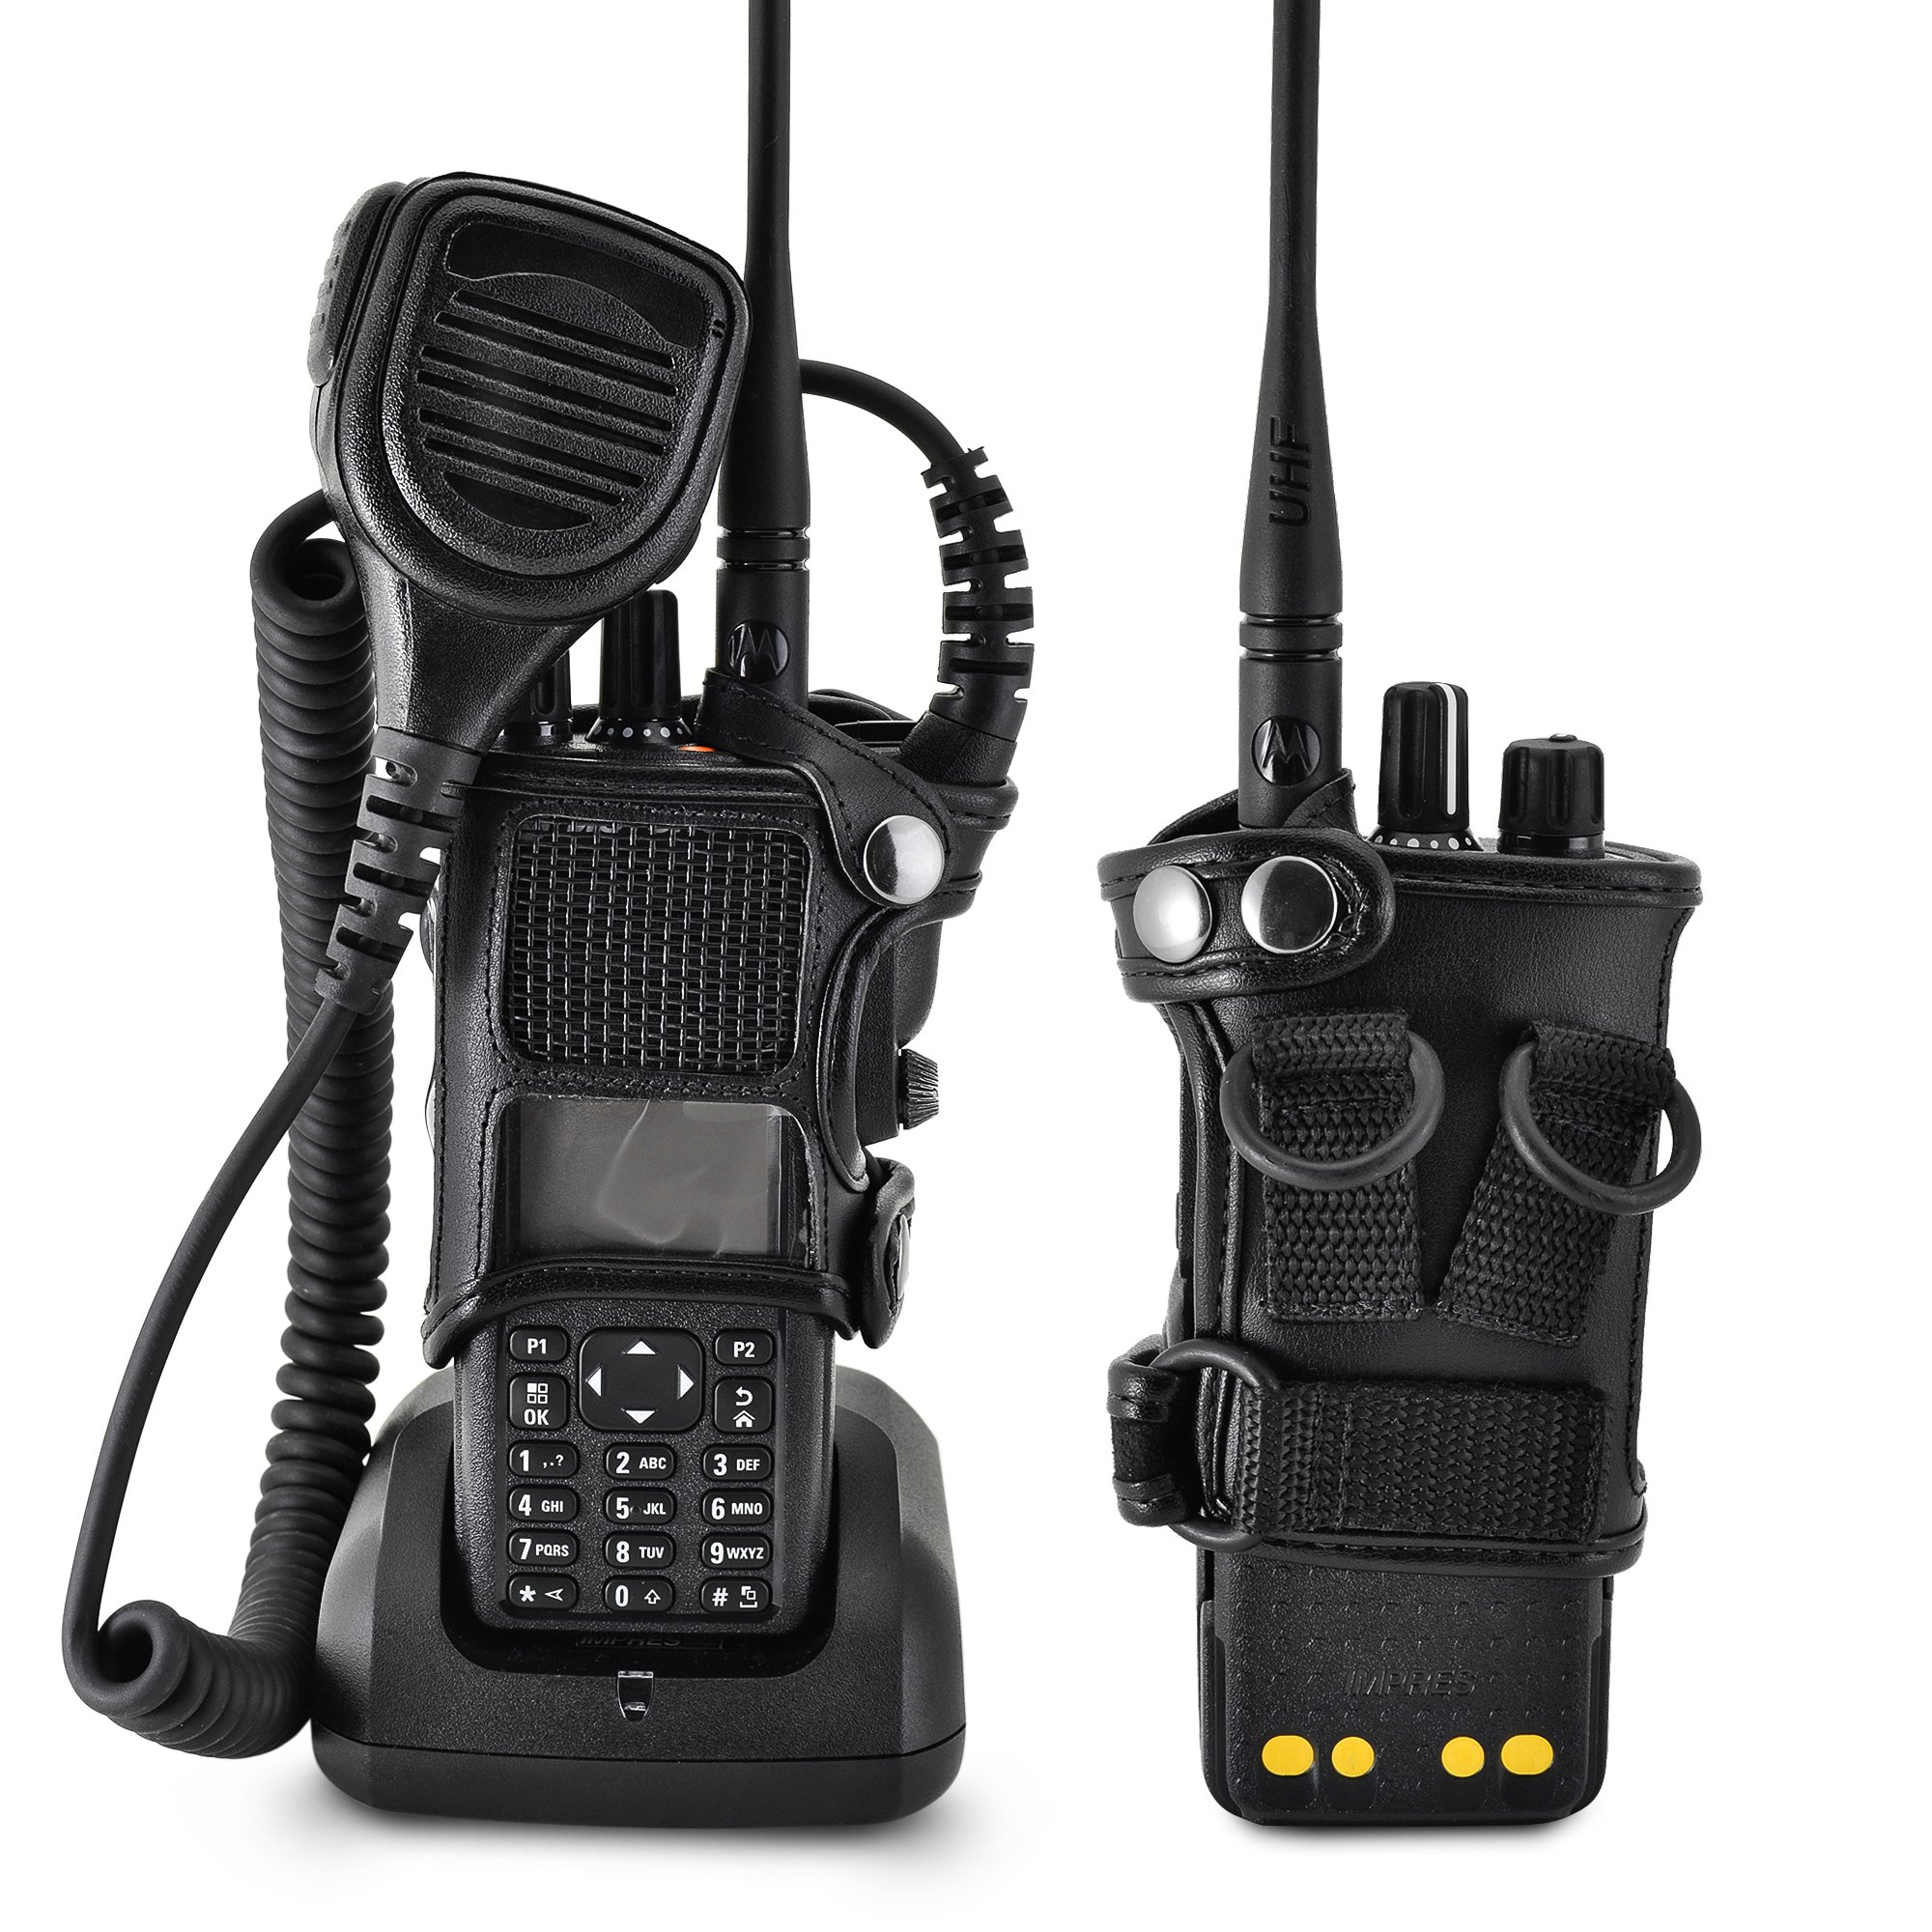 Turtleback Carry Holder for Motorola XPR 7550 Radio with D Rings Attachment, Fire and Police Two Way Radio Belt Case, Black Leather Duty Belt Holster with Heavy Duty D Rings, Made in USA